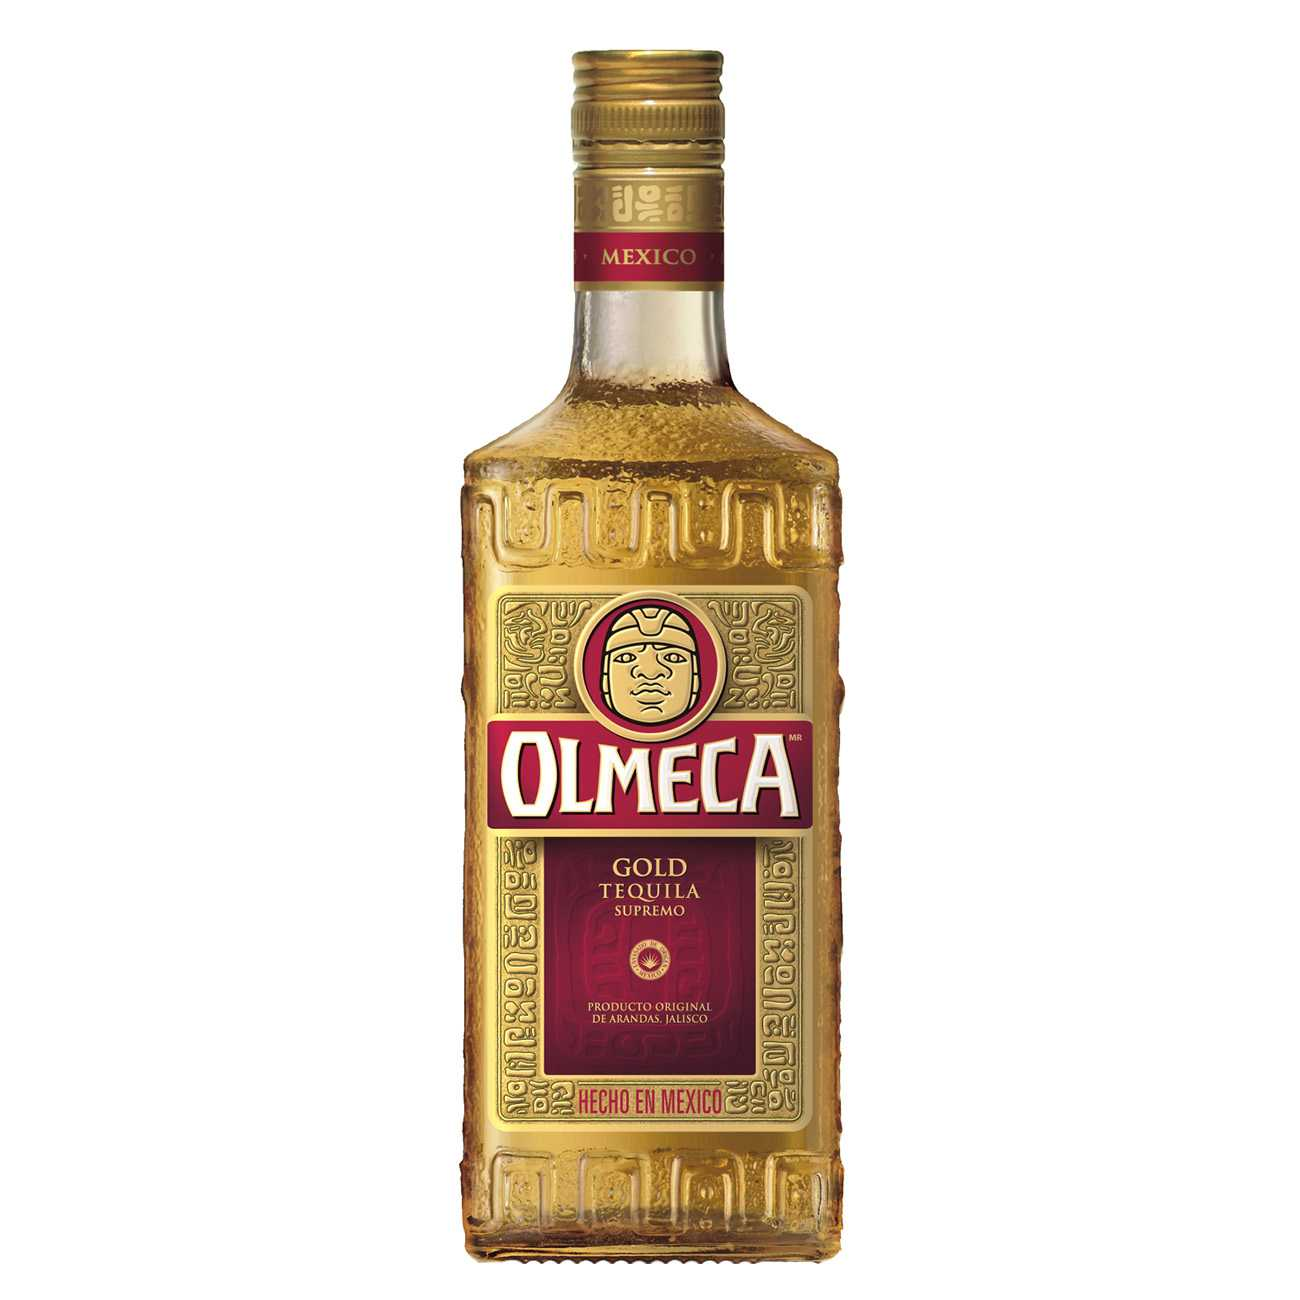 Gold 1000 Ml de la Olmeca